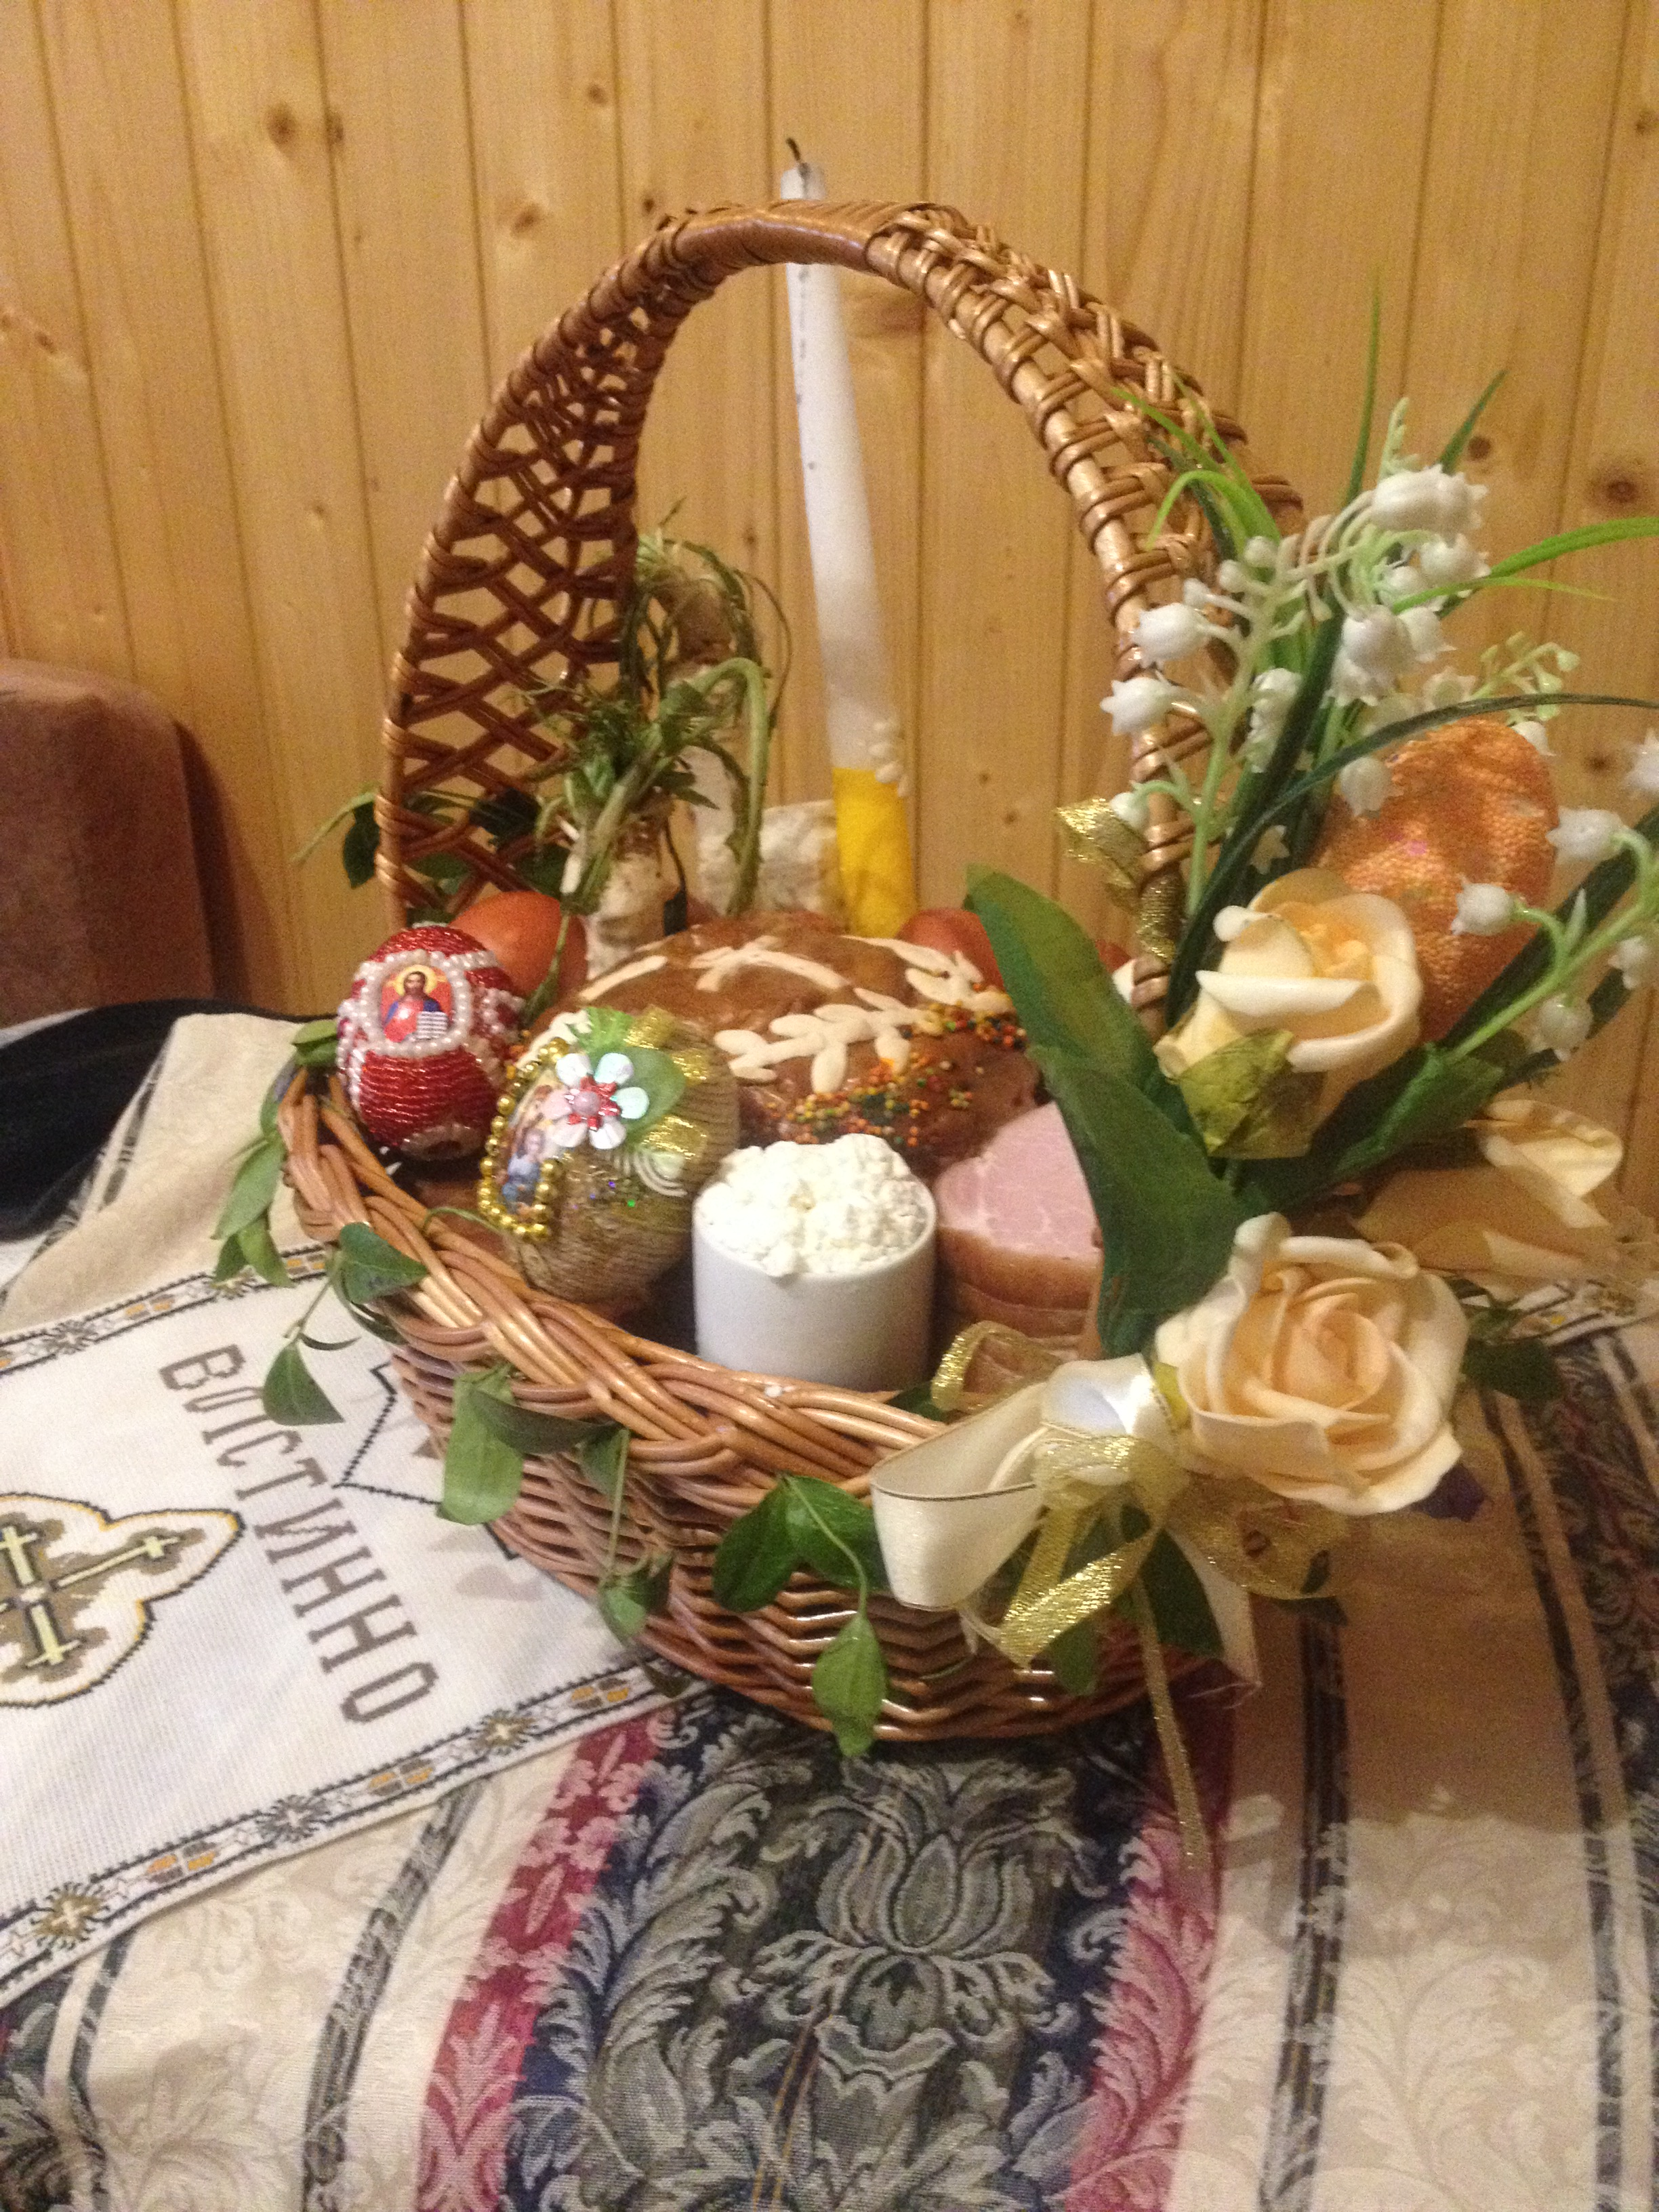 Ukrainian traditional easter basket special food and symbolism easter is the biggest holiday after christmas easter is called velykden in ukrainian the preparation for it is held during the last week of negle Choice Image